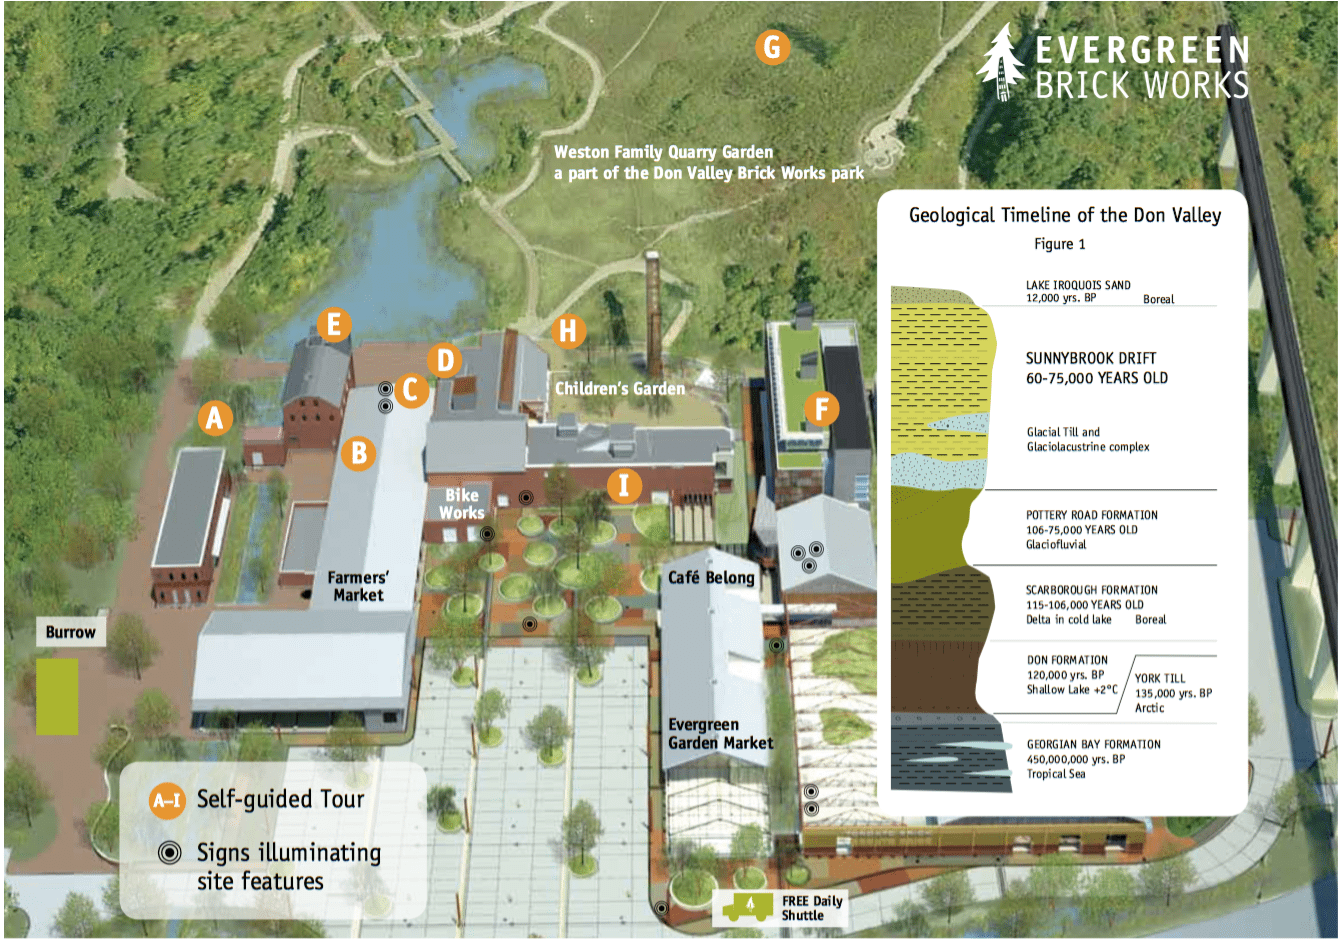 A tour map of the Evergreen Brick Works showing the geological age of the site. Image used courtesy of Evergreen Brick Works.